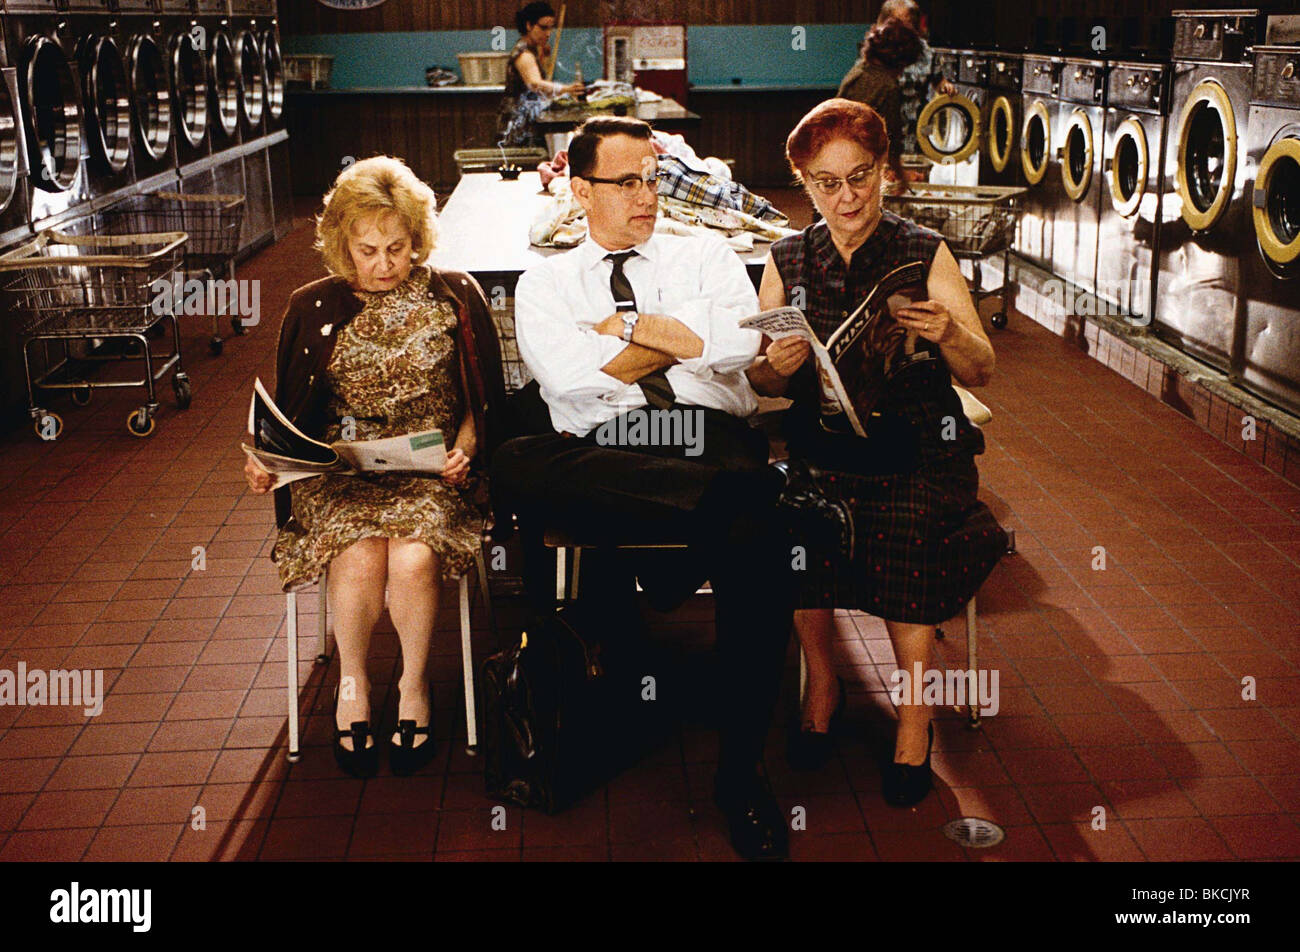 CATCH ME IF YOU CAN (2002) TOM HANKS CIYC 001-37 - Stock Image